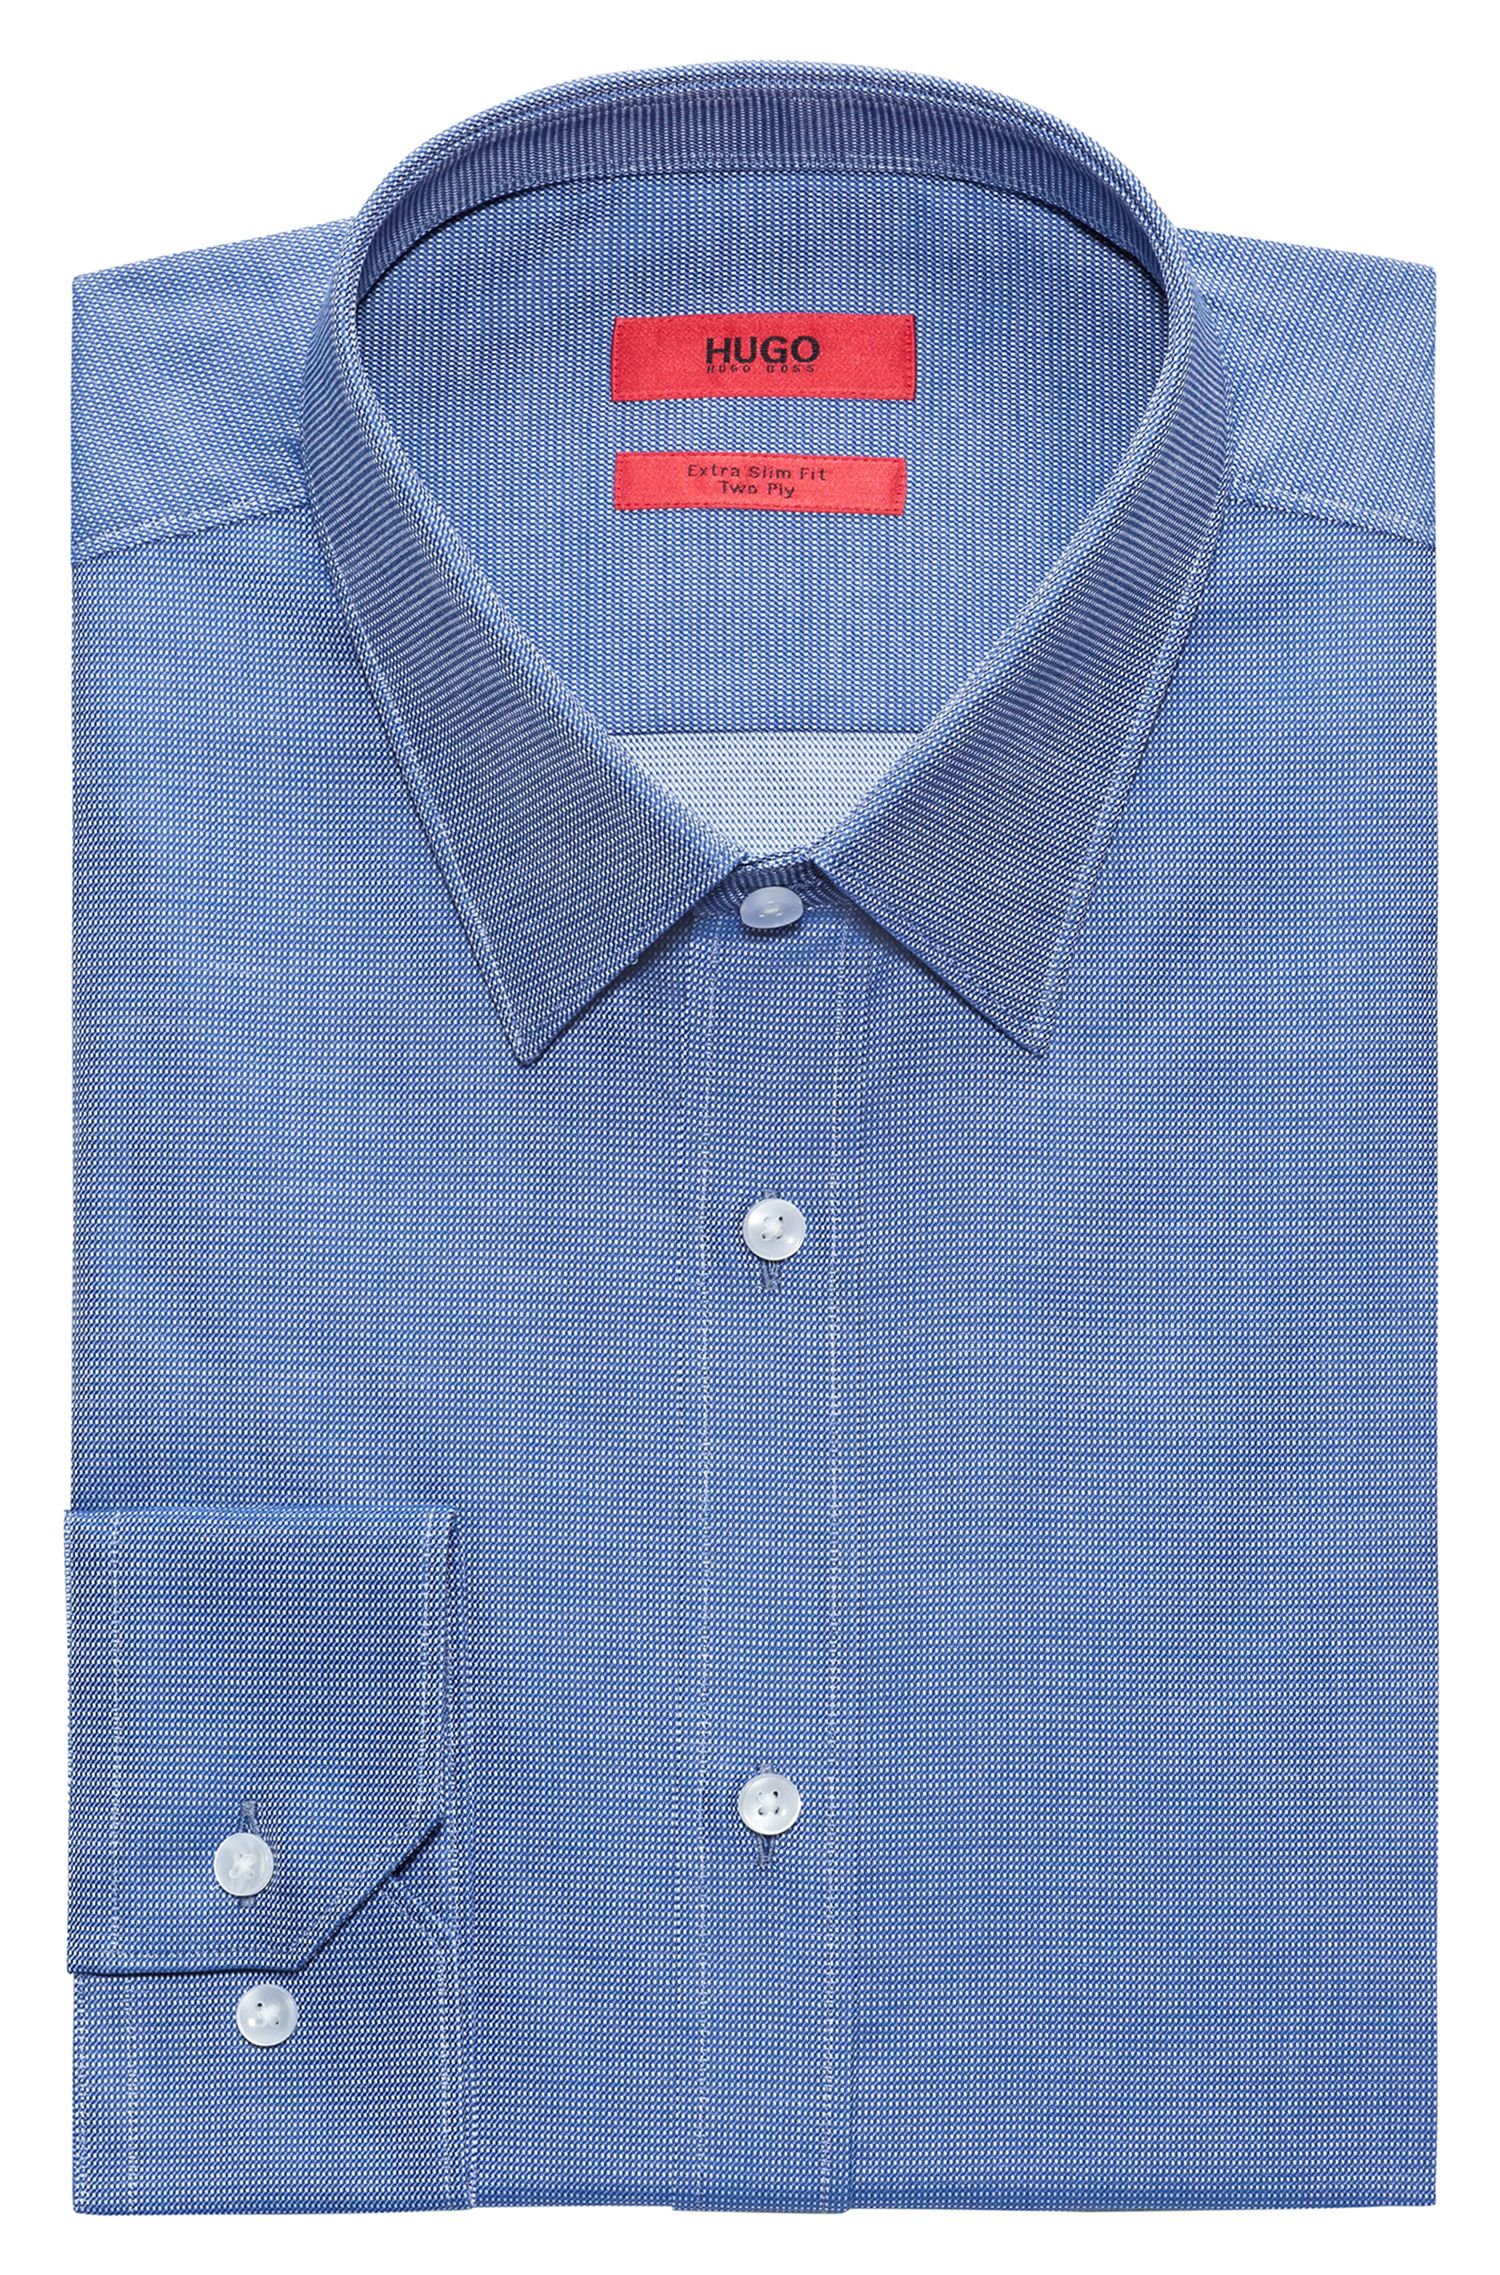 Pindot Cotton Dress Shirt, Extra Slim Fit | Elisha